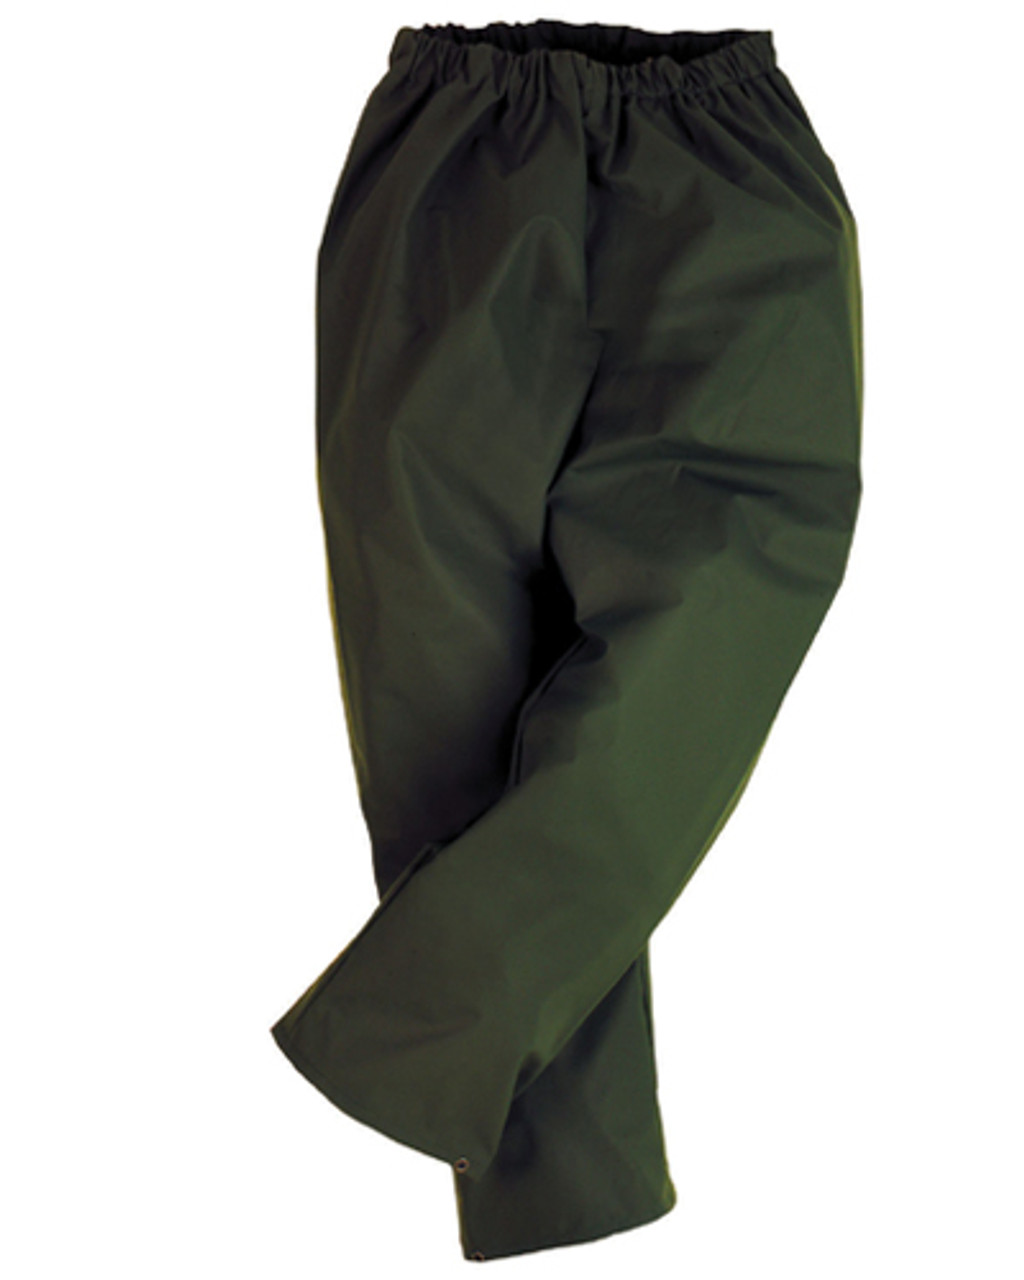 cheap prices reliable quality 2018 shoes Hoggs of Fife Flexothane Over-Trousers